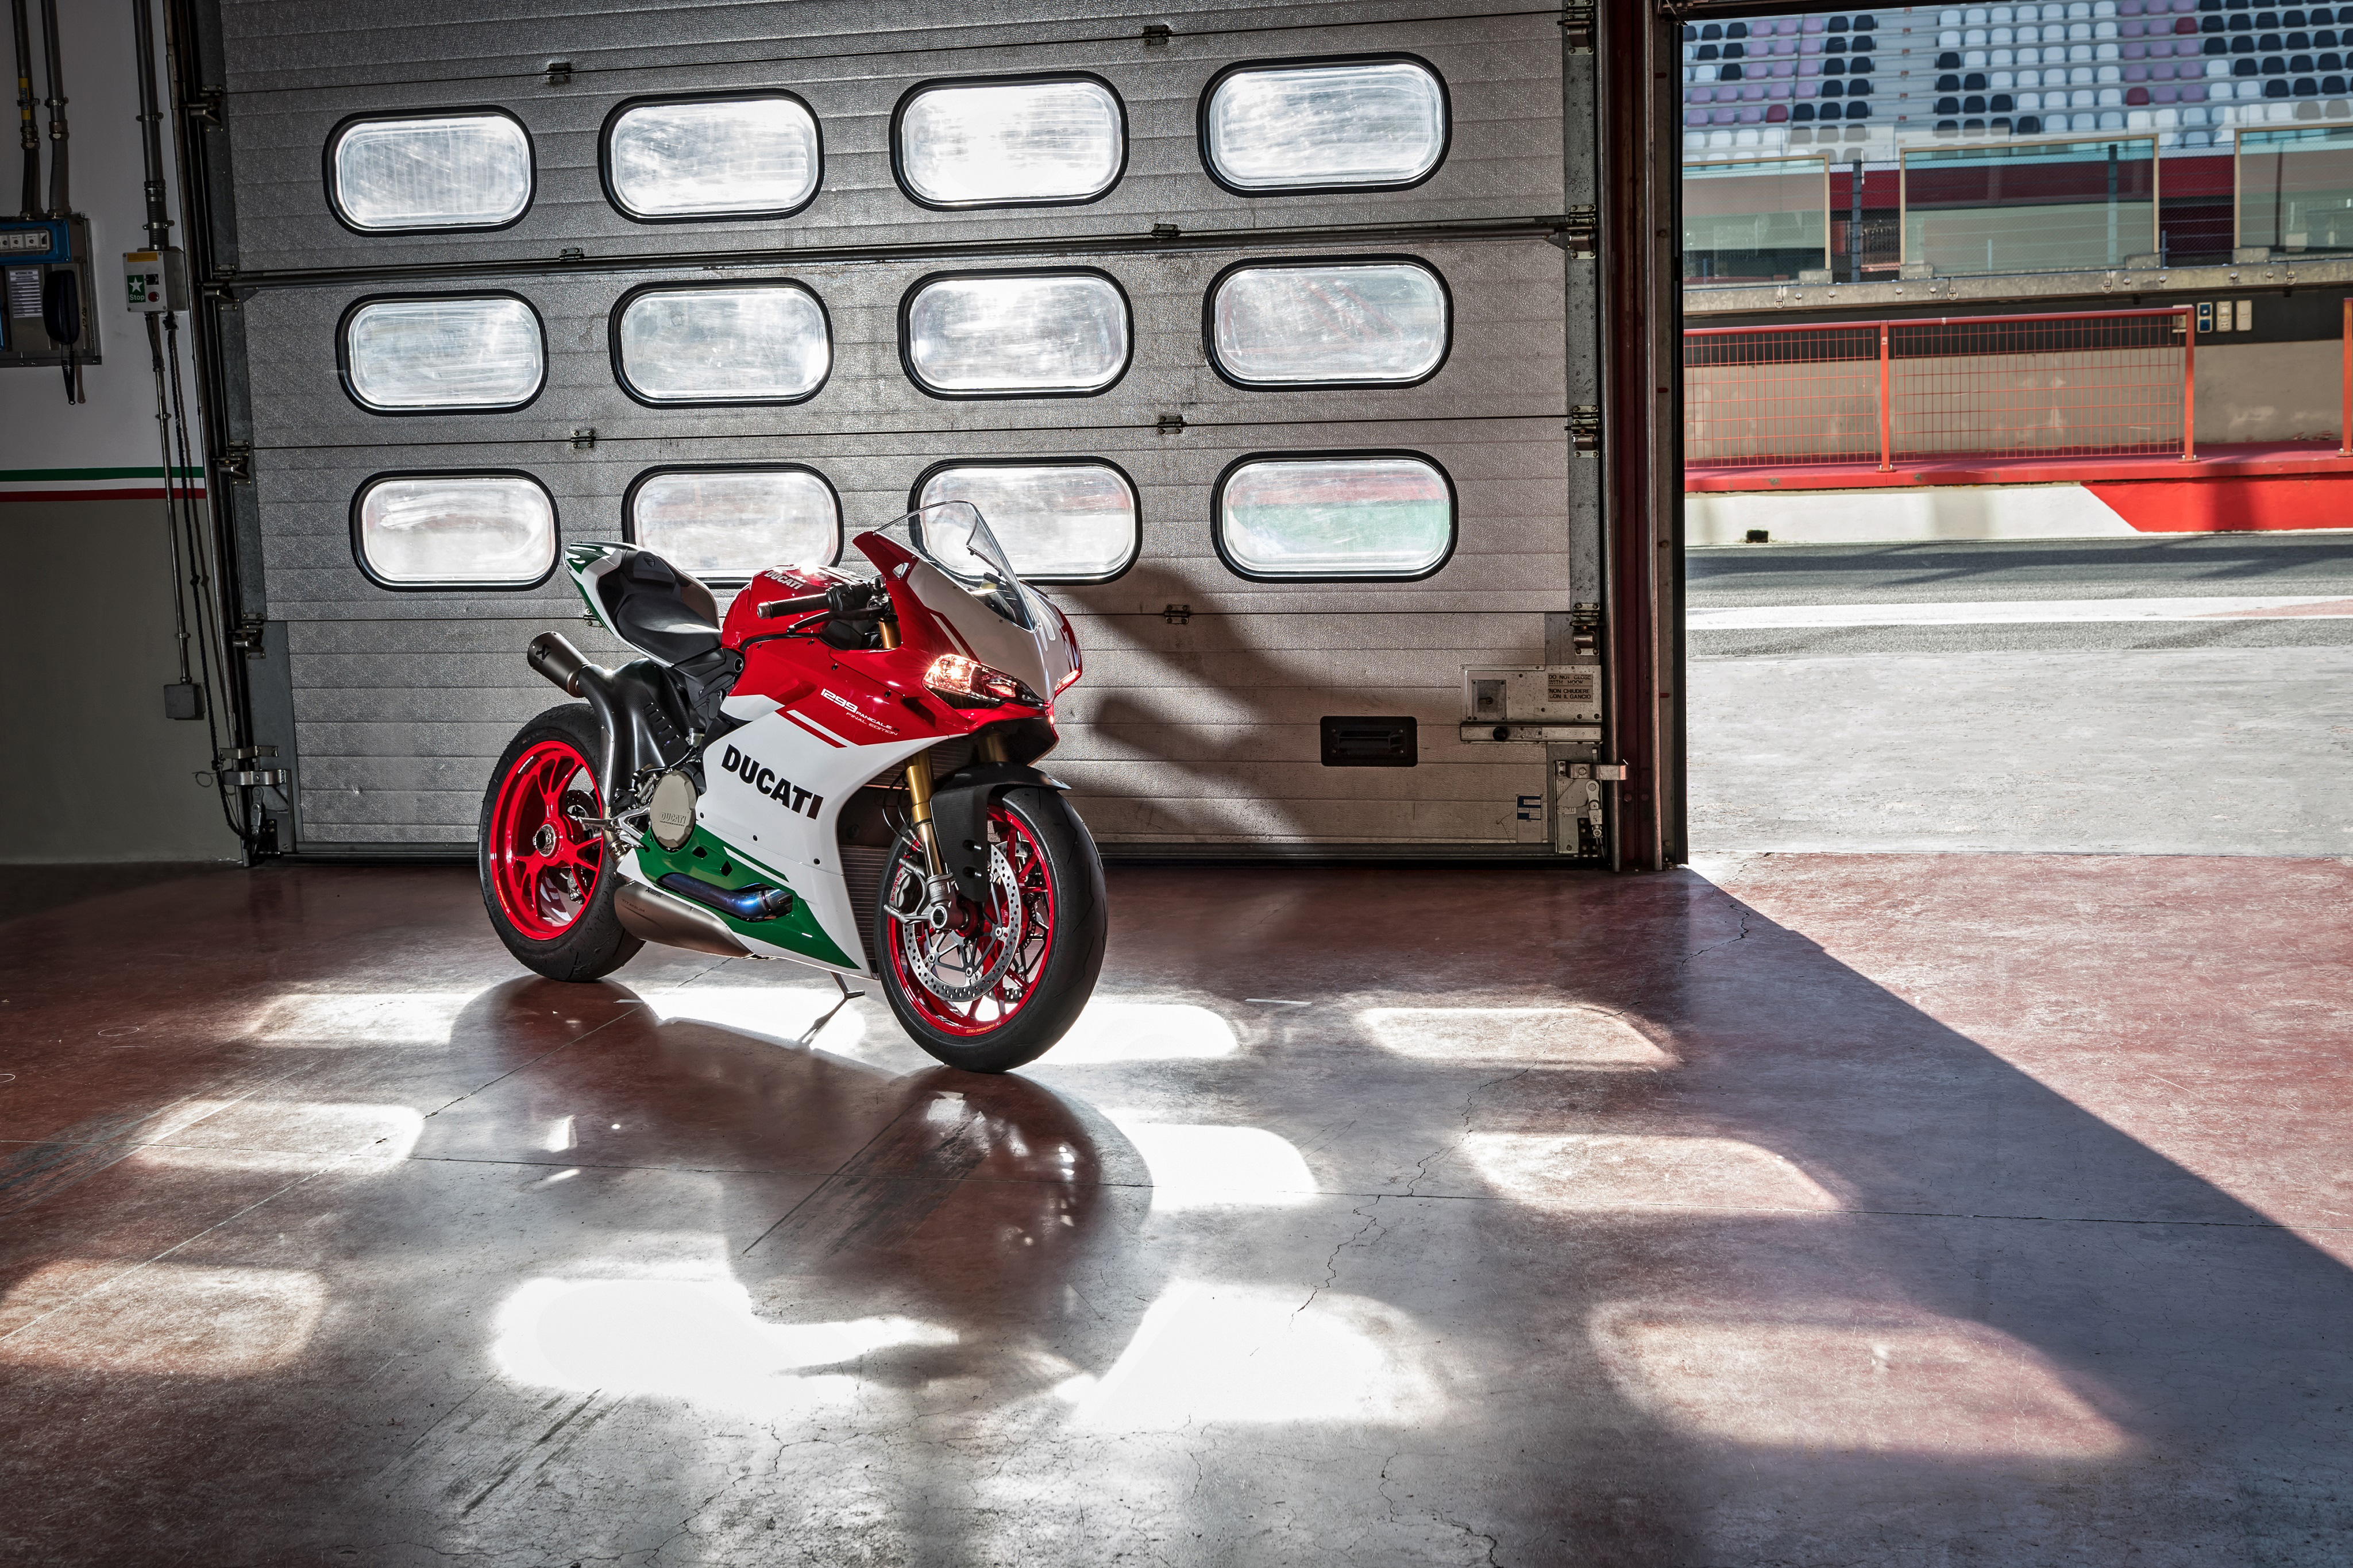 Ducati 1299 Panigale S 4k Wallpapers: Ducati 1299 Panigale 2017, HD Bikes, 4k Wallpapers, Images